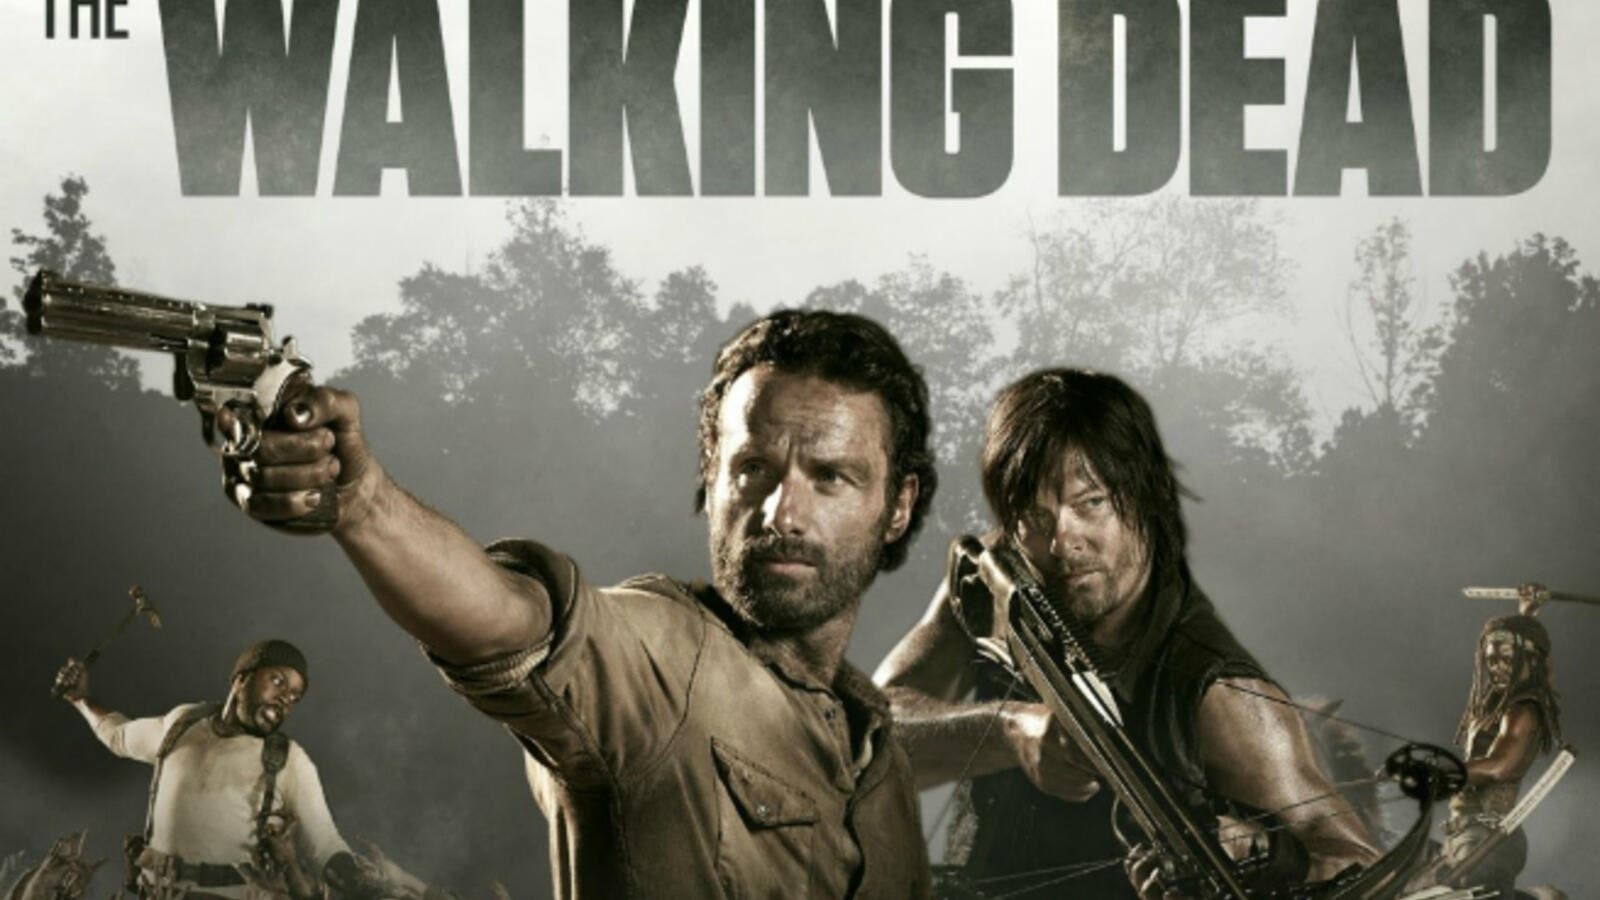 The Walking Dead Has a Surprise for You, Darling | Al Bawaba